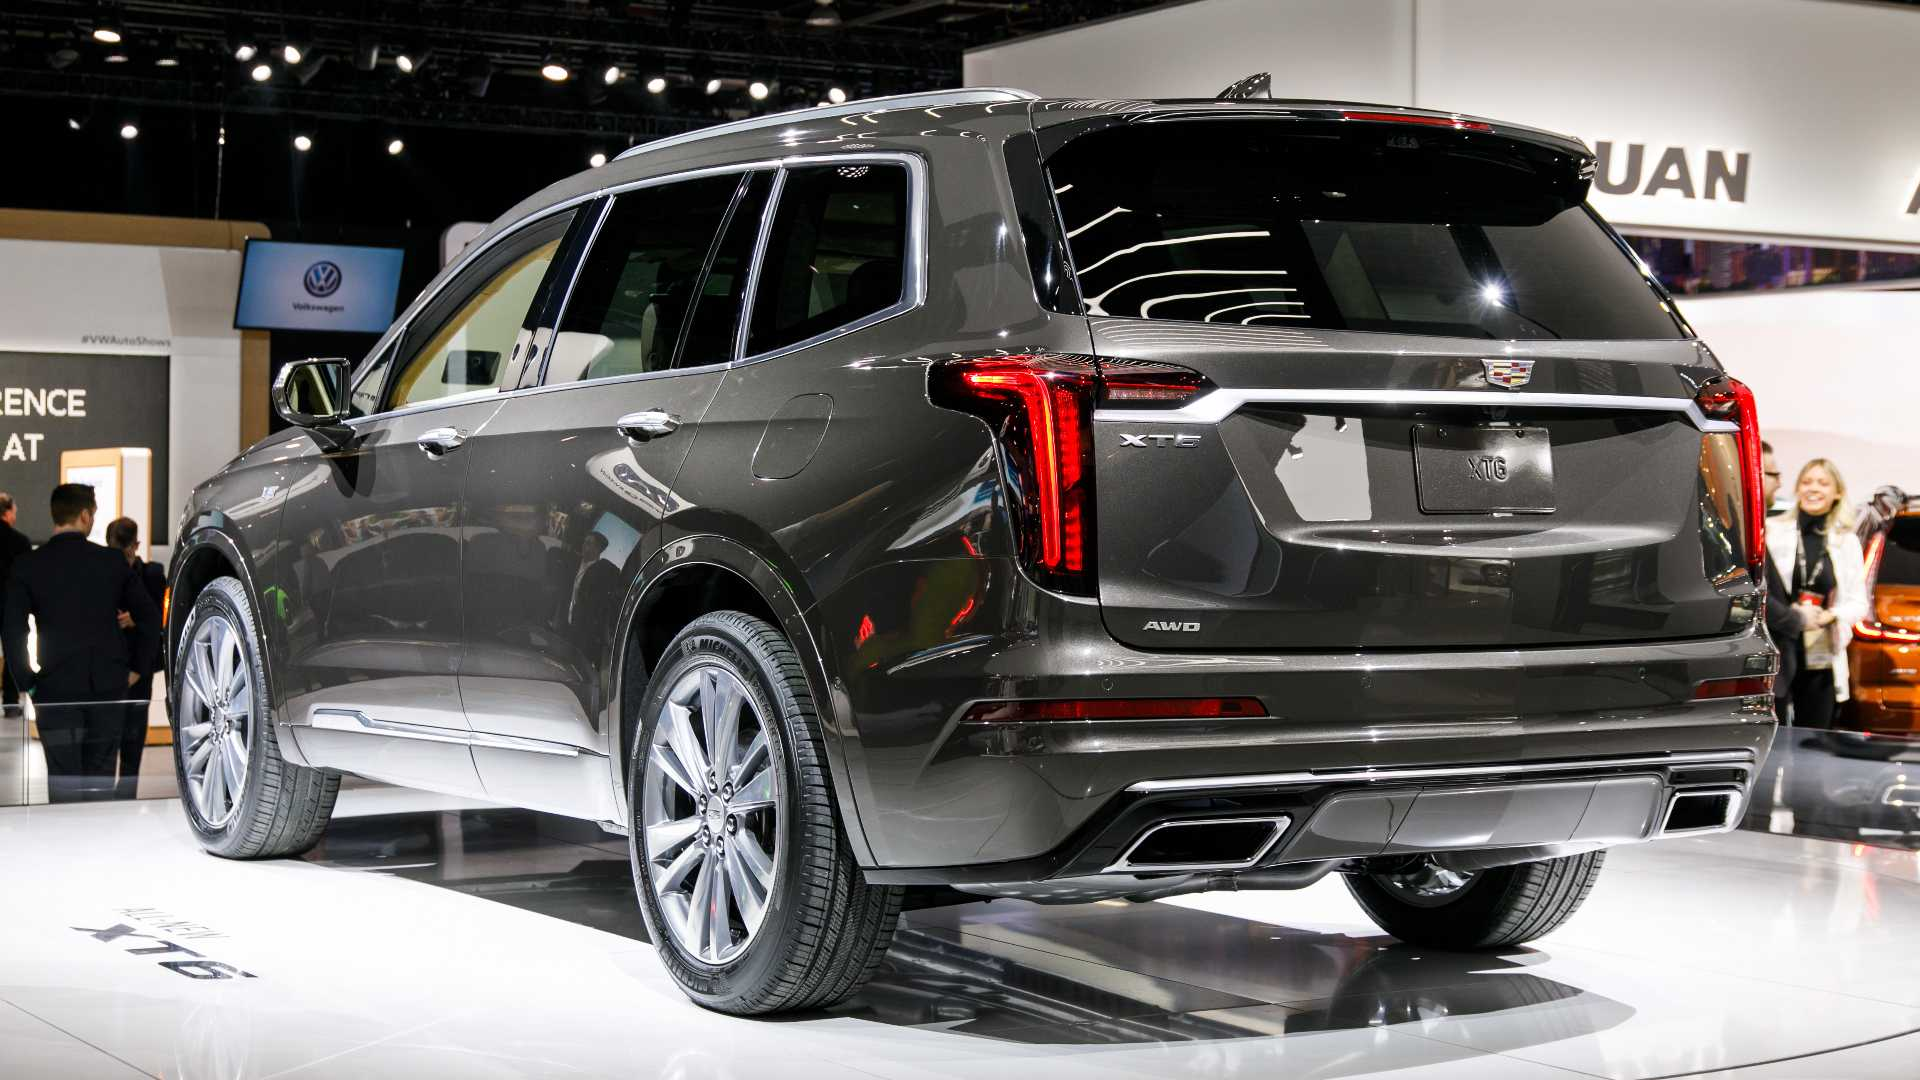 78 Concept of 2020 Cadillac Xt6 Availability Release Date for 2020 Cadillac Xt6 Availability